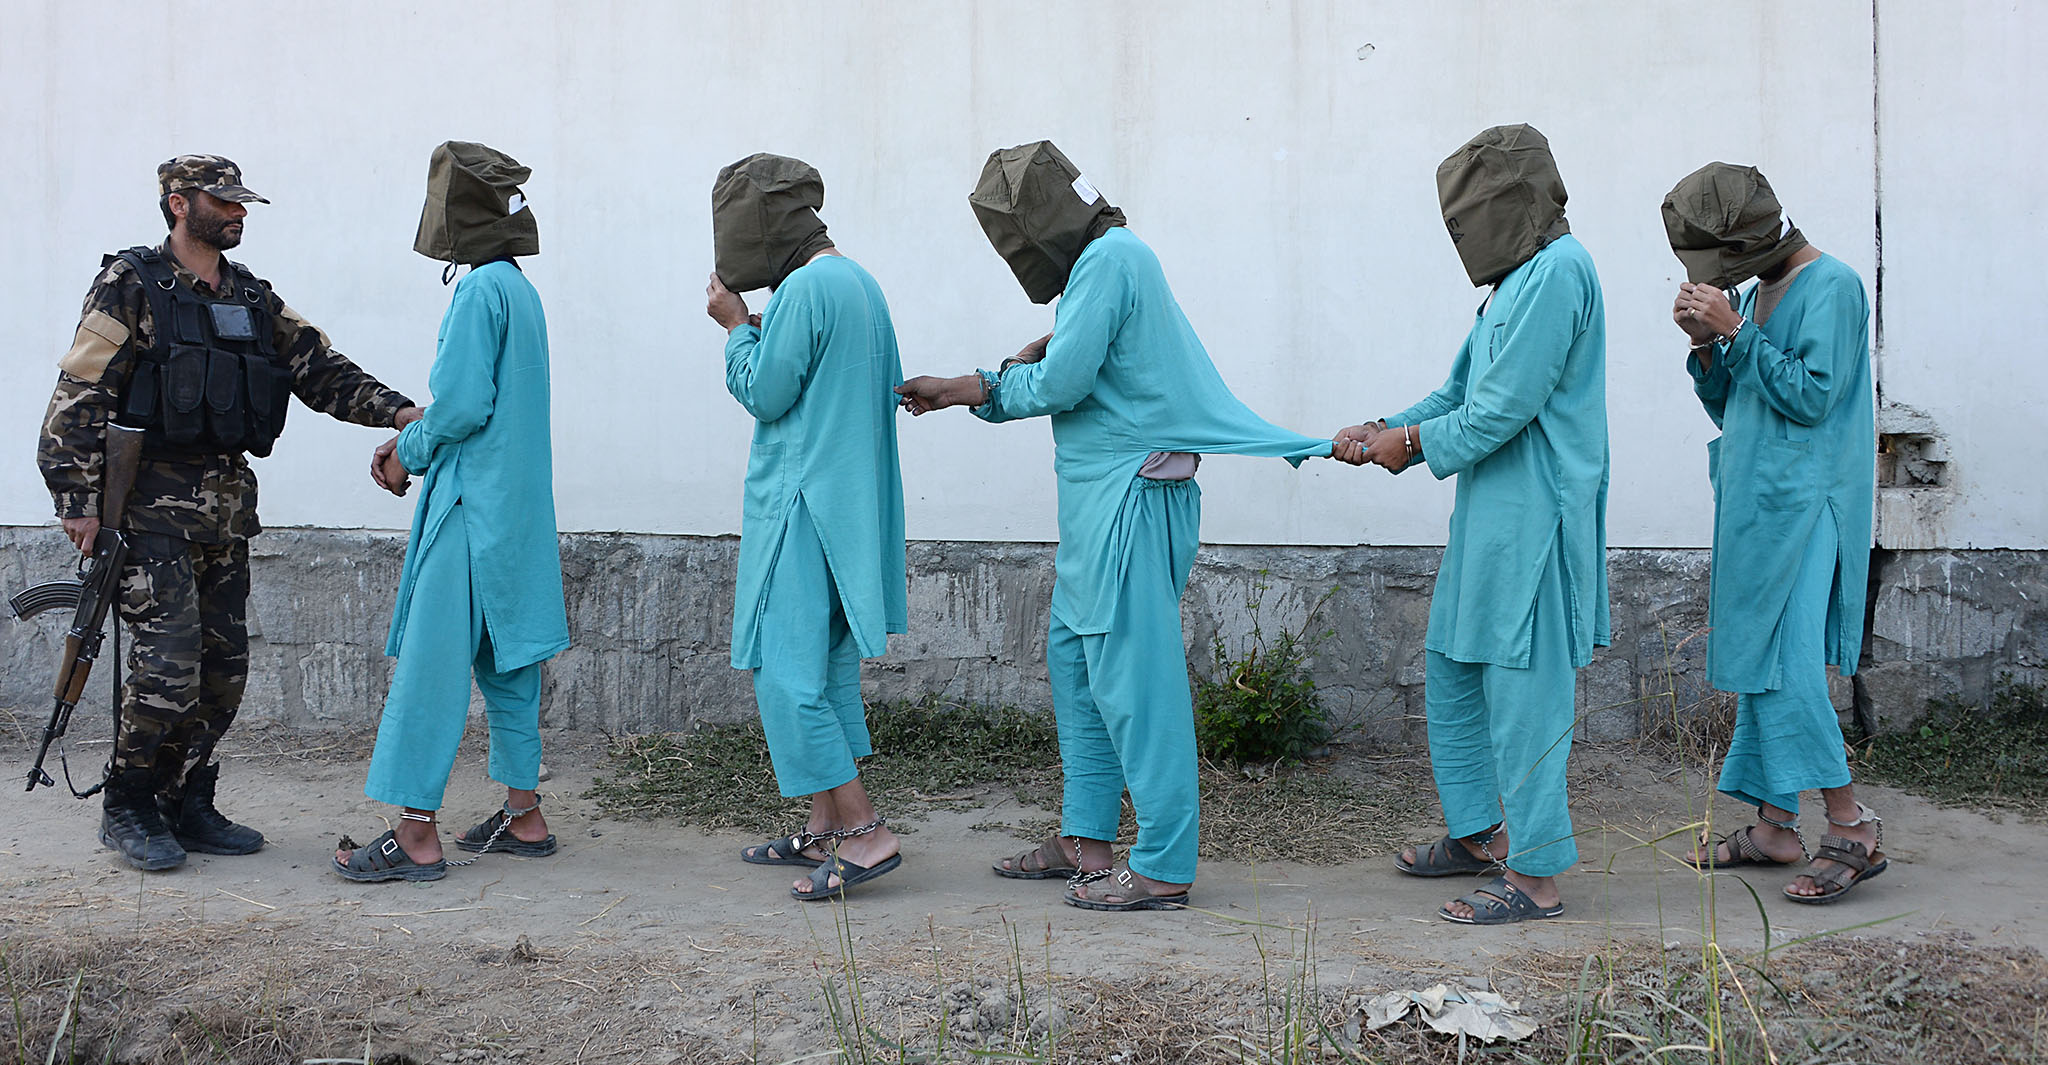 Suspected Islamic State (IS) and Taliban militants are brought before media during a press conference in Jalalabad on December 6, 2016. Afghan National Directorate Security (NDS) forces arrested three suspected Islamic State (IS) fighters and eight Taliban insurgents during an operation in different part of Jalalabad city, officials said. / AFP PHOTO / NOORULLAH SHIRZADANOORULLAH SHIRZADA/AFP/Getty Images